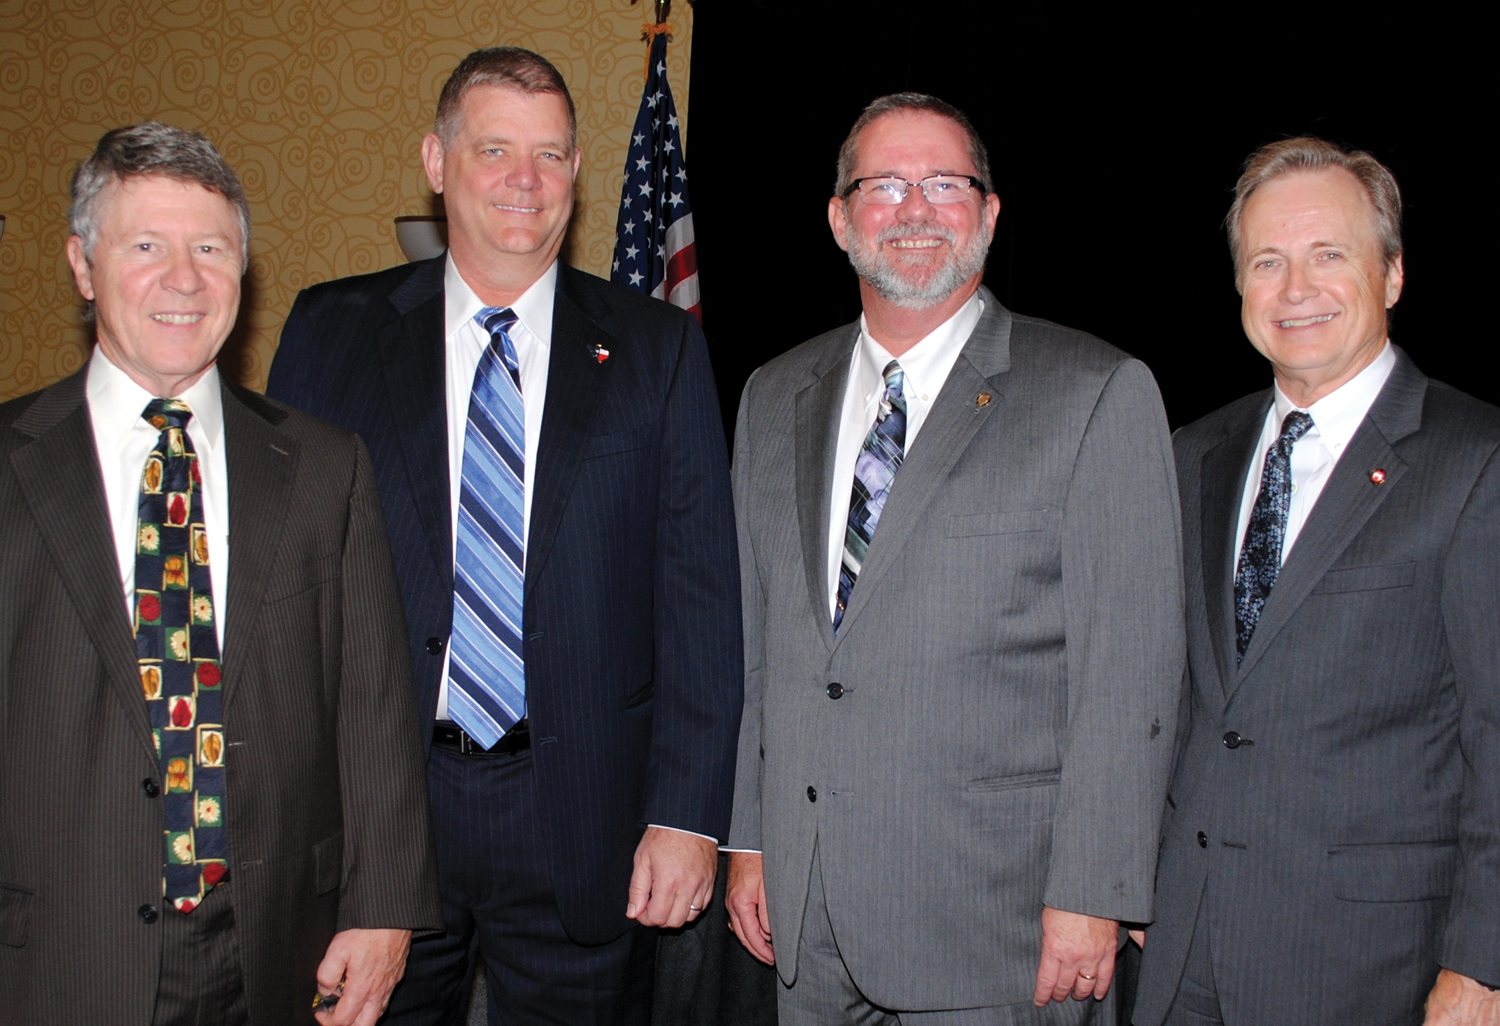 BayTran Chairman David Hamiton, right, thanks Harris County Judge Ed Emmett, Galveston County Judge Mark Henry and Brazoria County Judge Mark Sebesta, from left, for participating in the 17th annual State of the Counties Luncheon at the Hobby Marriott Hotel.